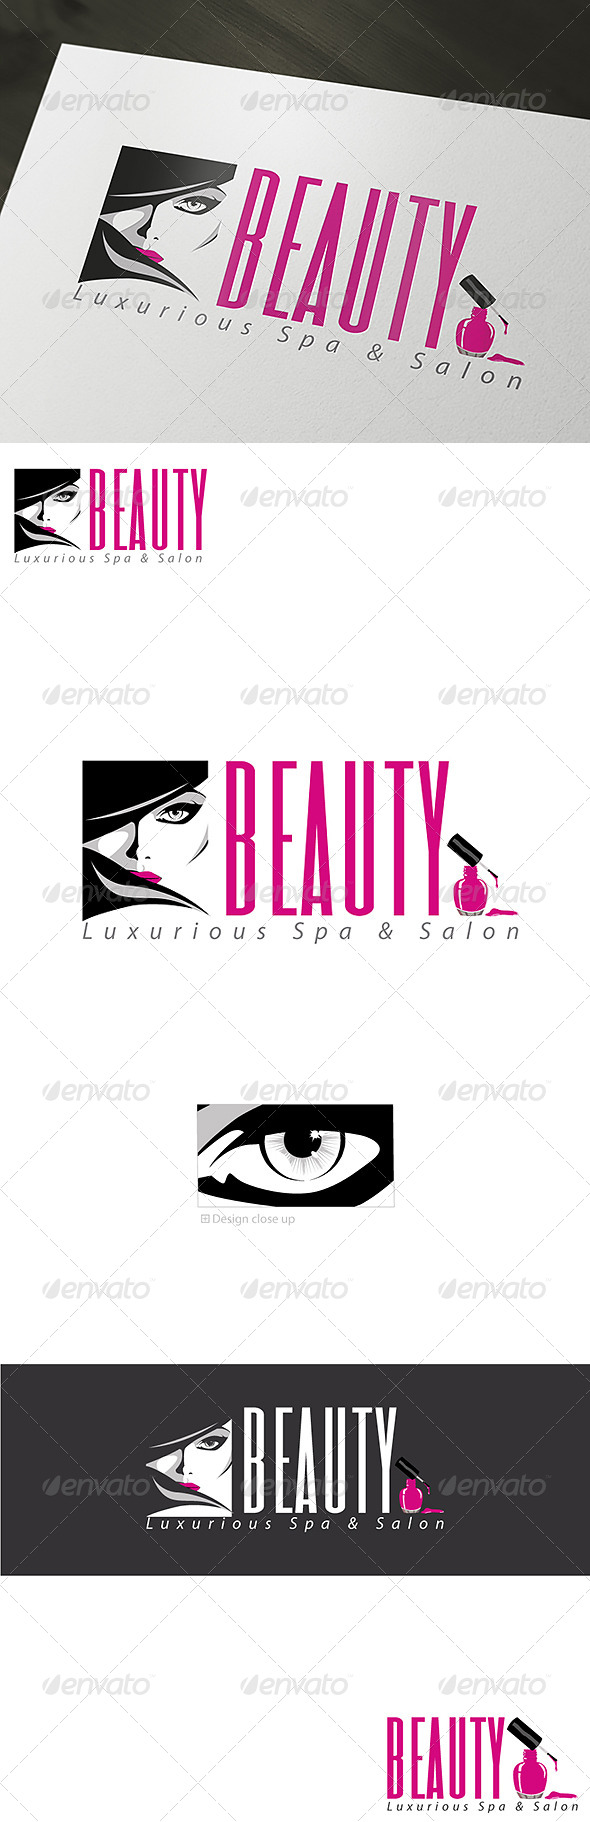 GraphicRiver Luxurious Beauty Spa & Salon Logo Template 6879661